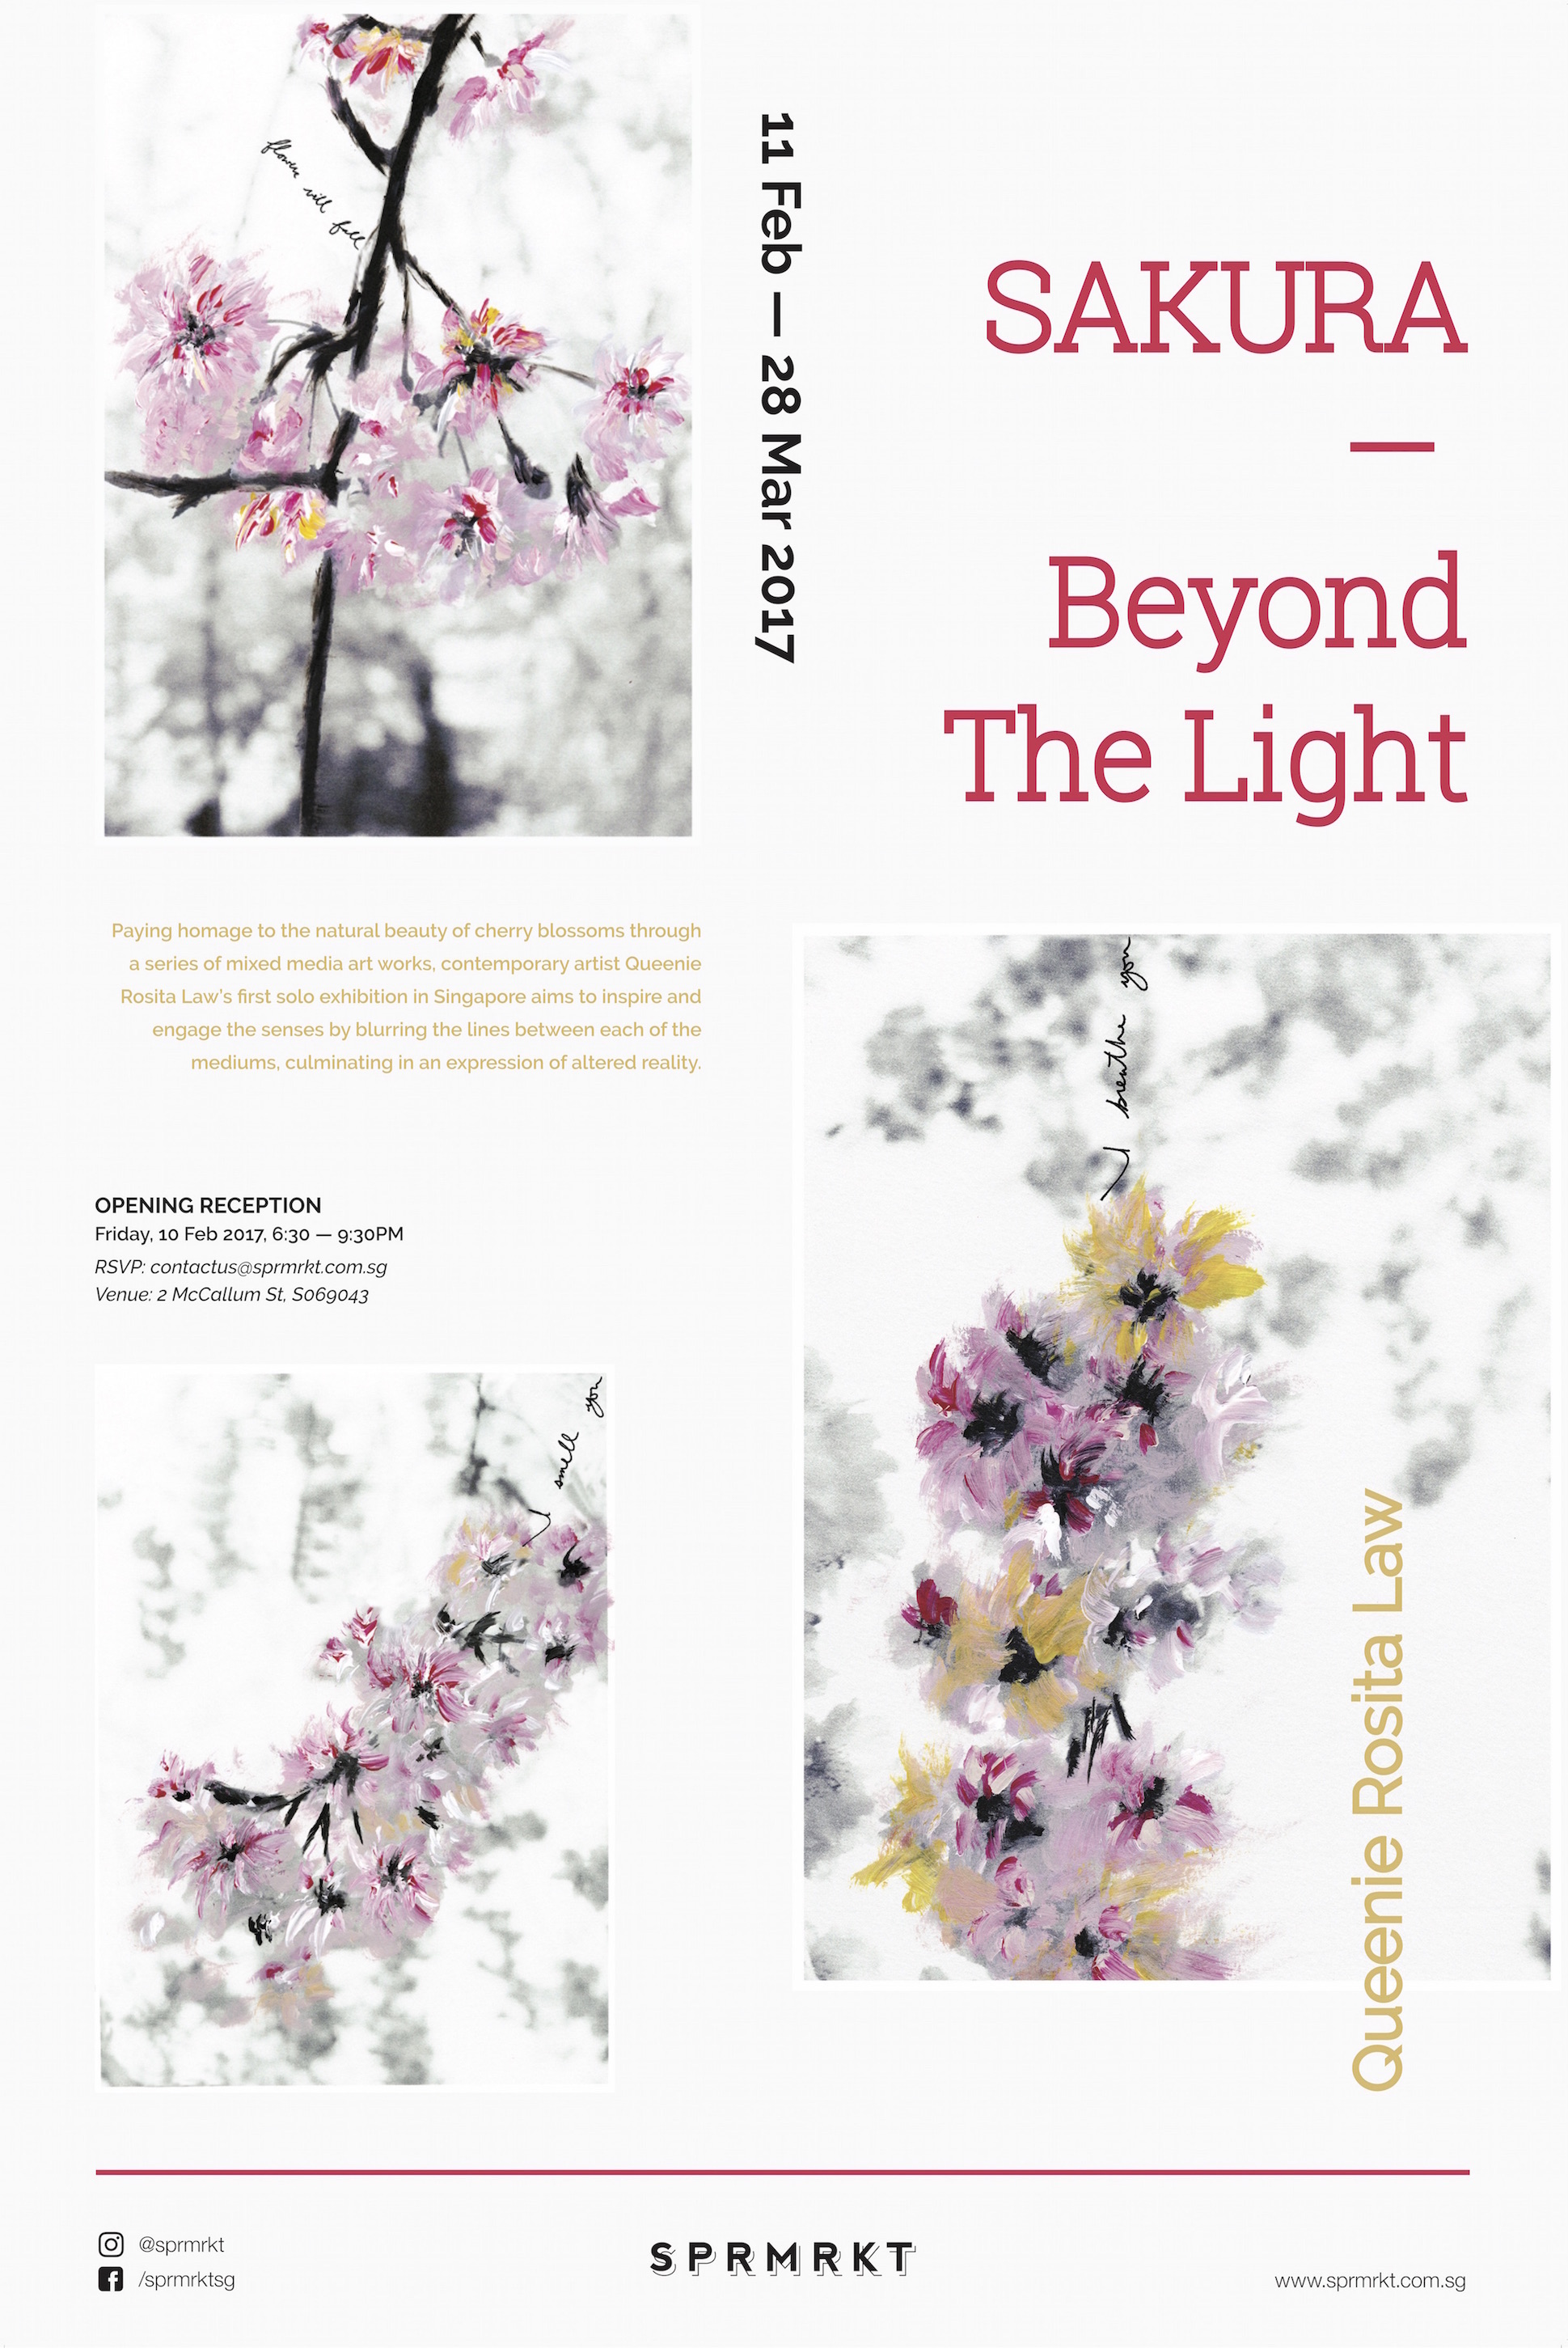 SAKURA Beyond The Light